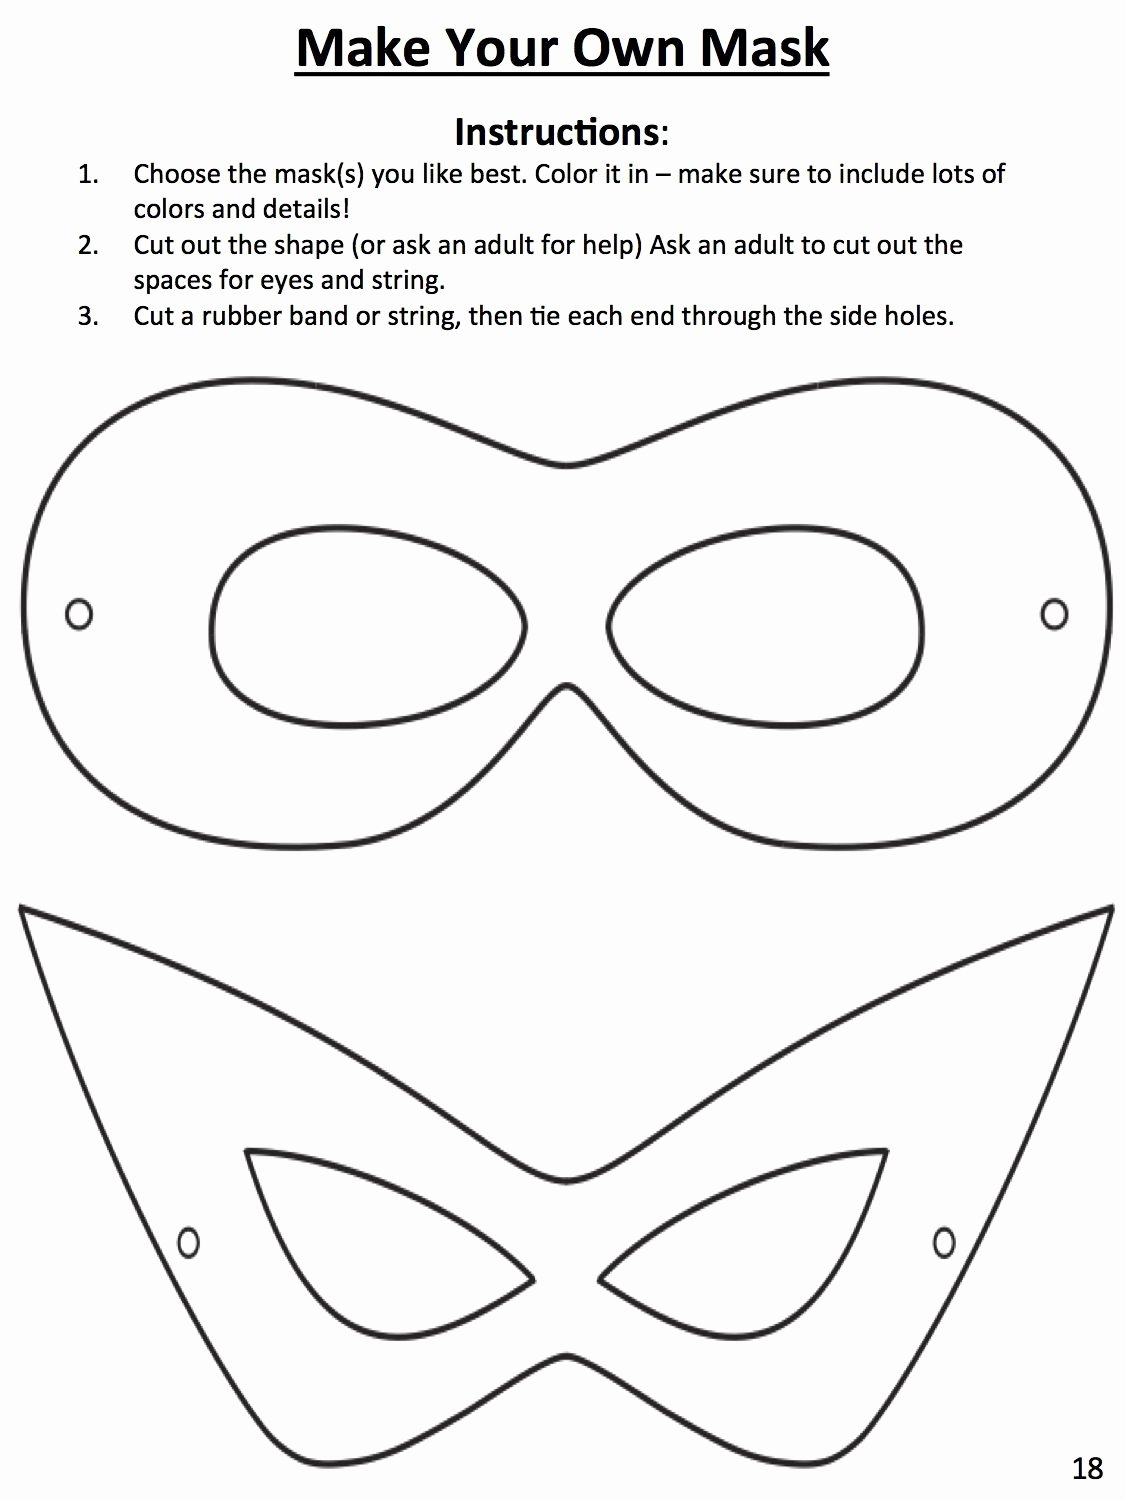 Superhero Mask Template Pdf Inspirational Download This Template to Design Your Own Superhero Mask